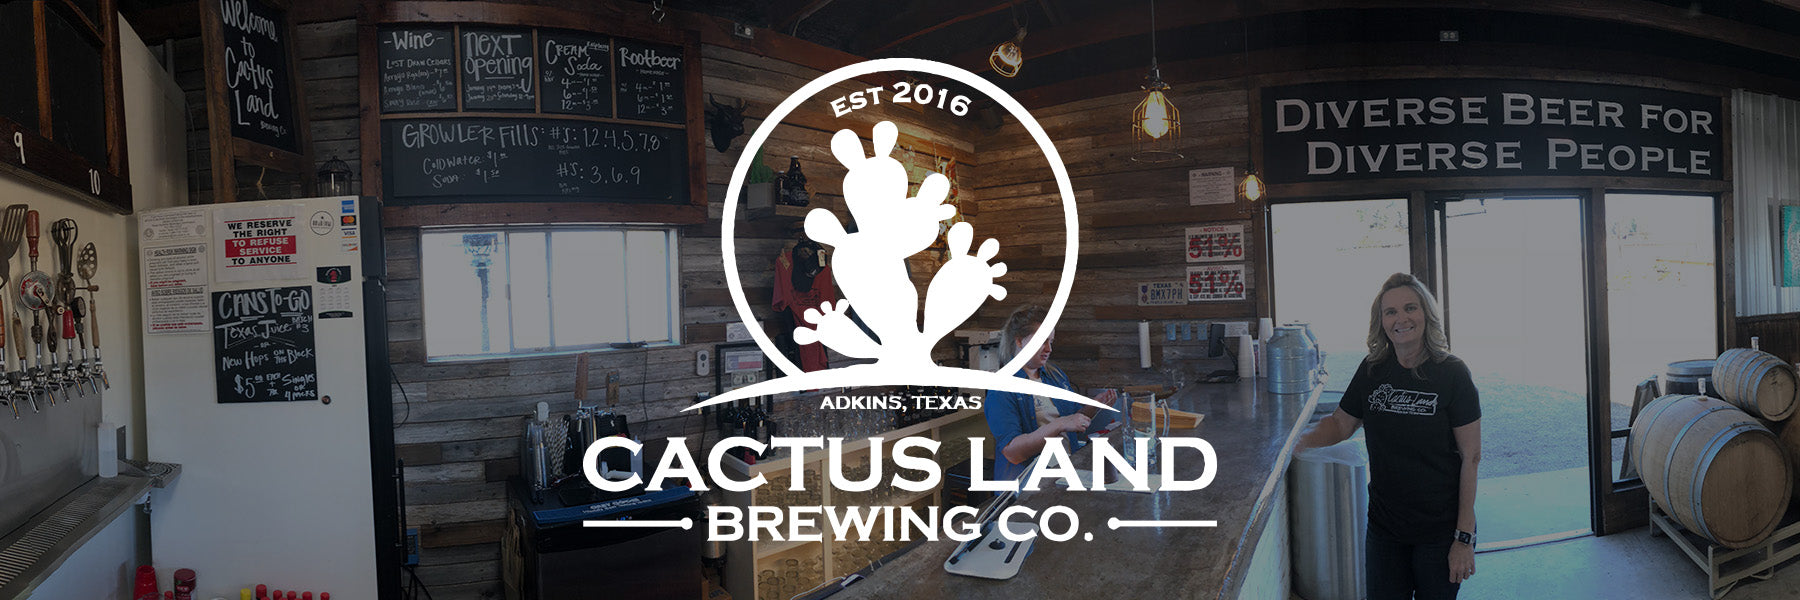 Cactus Land Brewing Co. | Adkins, TX